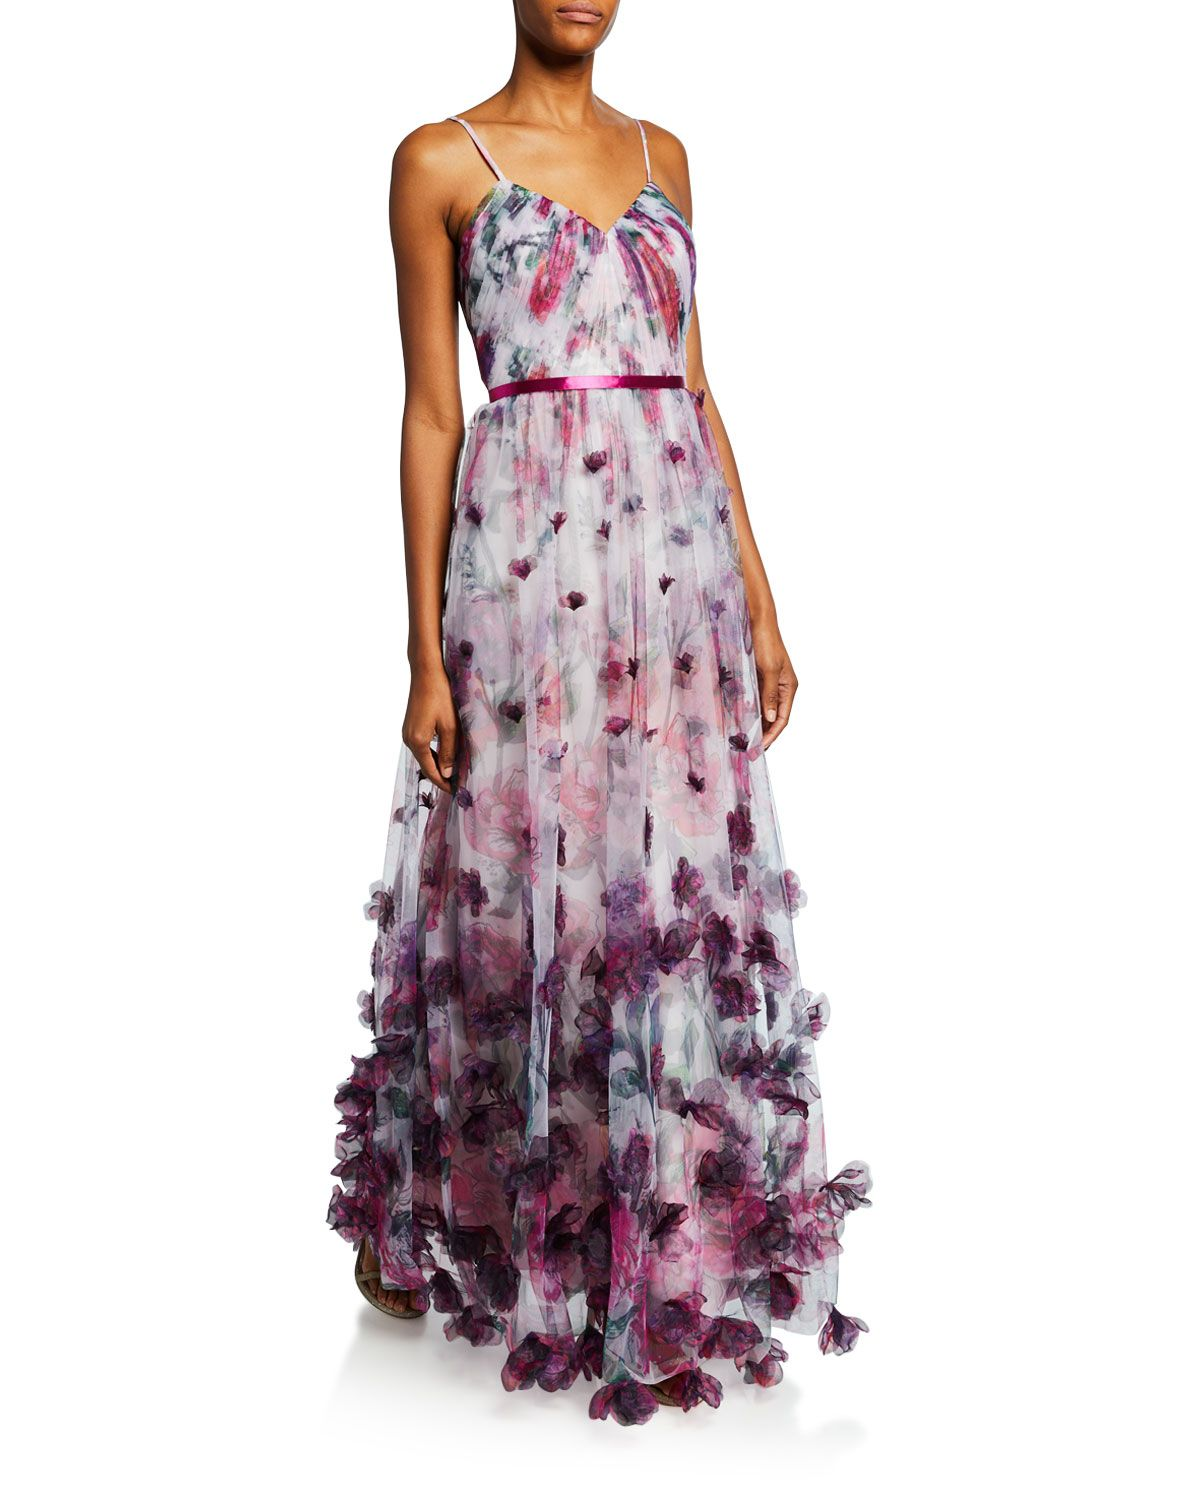 6e31970628 Marchesa Notte Floral-Print Sweetheart Spaghetti-Strap Tulle Gown w/ 3D  Chiffon Flowers